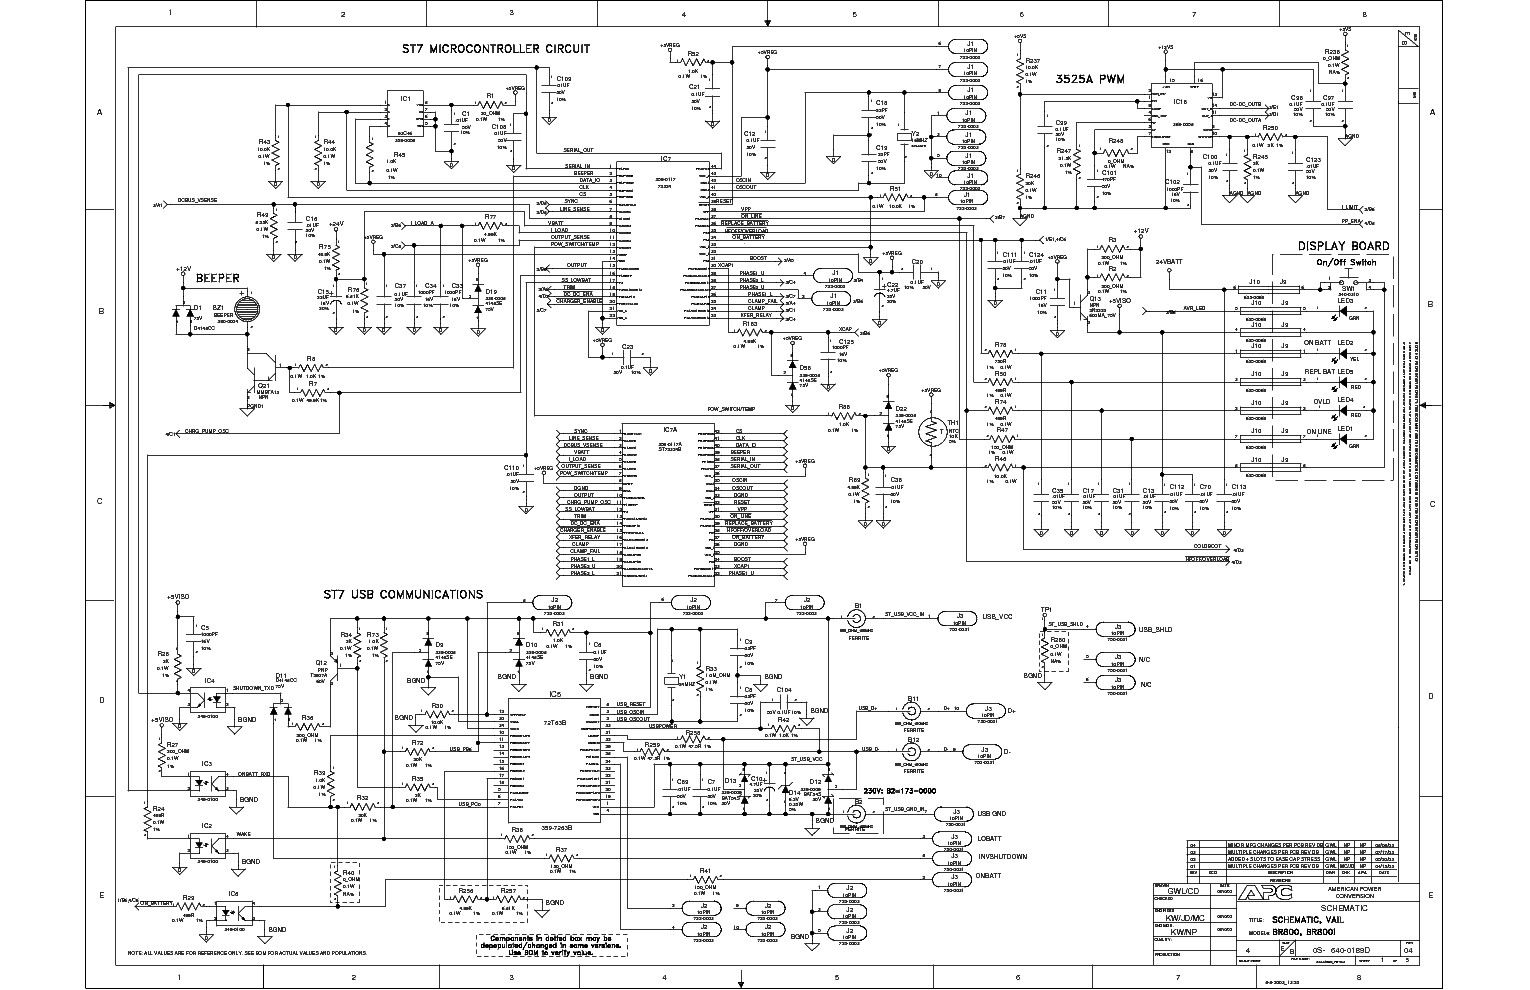 Ups Schematic Circuit Diagram Beautiful Apc Smart Ups 1500